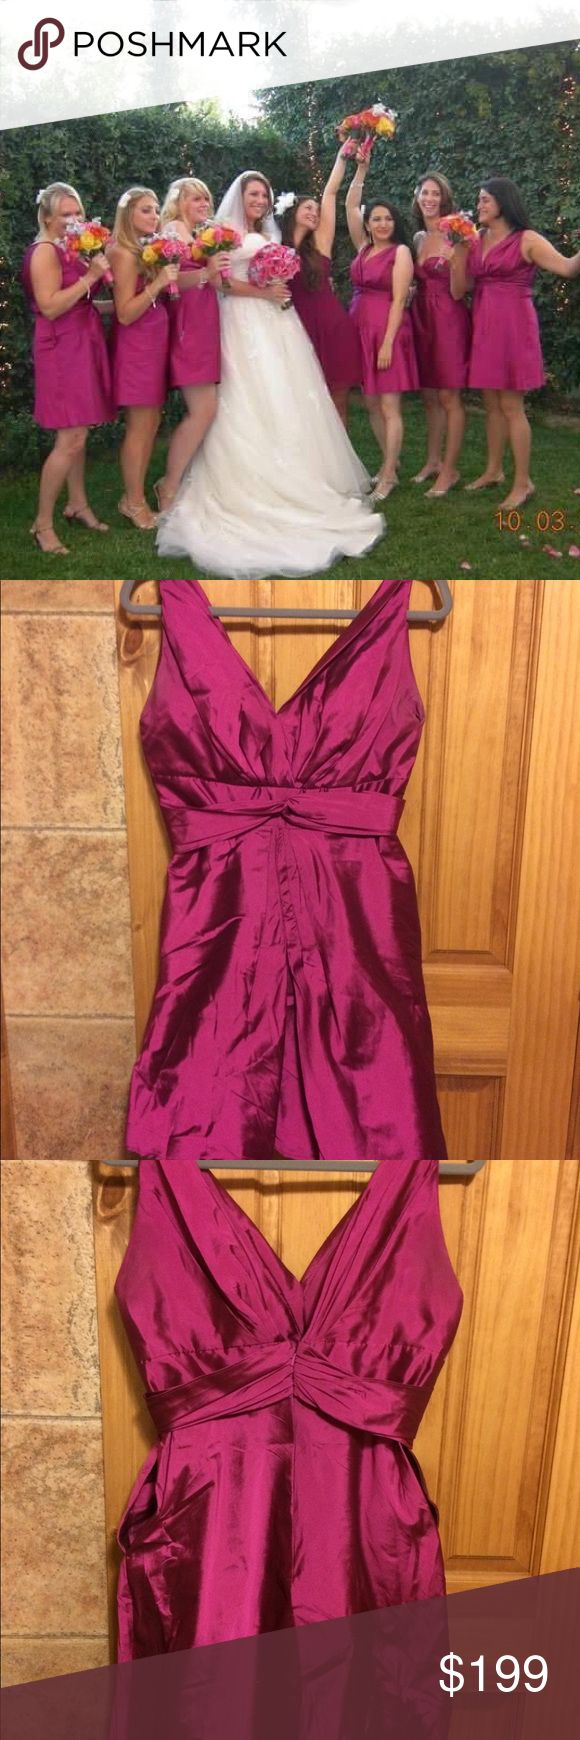 Bridesmaids or prom dress Worn once. Needs steaming cuz it's been in storage. Designer. Taffeta. Color is either fuchsia or raspberry (I can't remember). Has built in bra holder in back to keep back of bra from showing. Has 2 side pockets to be able to carry stuff without a purse during the wedding. I had it shortened, the top front stitched high to keep my boobs from falling out & the front seam stitched to keep it flat, so it didn't make me look pregnant. The designer's photo shows how…